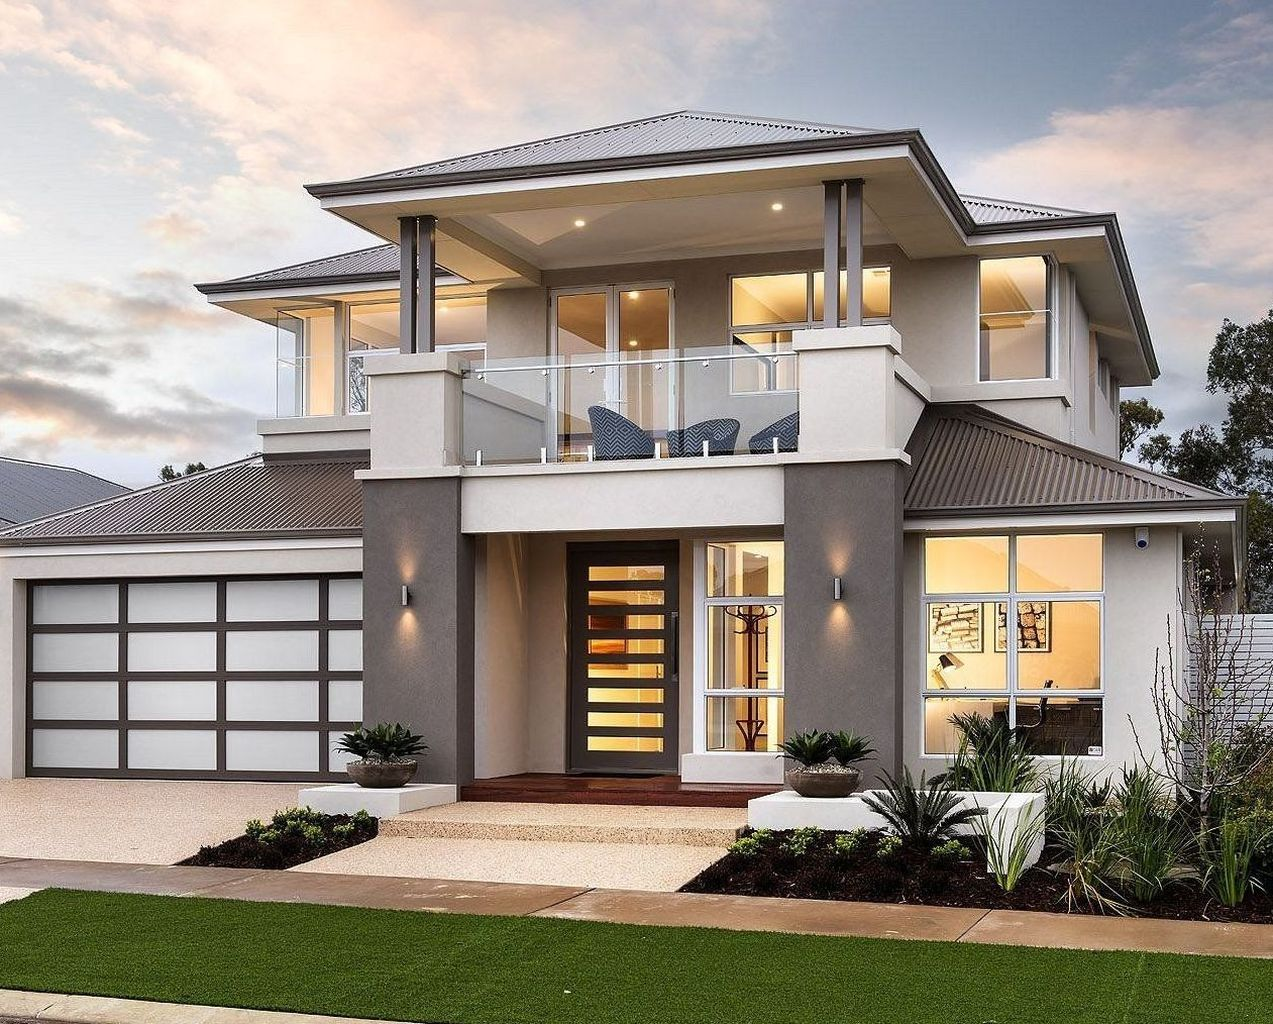 Prodigious Fashionable Structure Concepts For Your Excellent Residence Minimalist House Design House Front Design House Designs Exterior